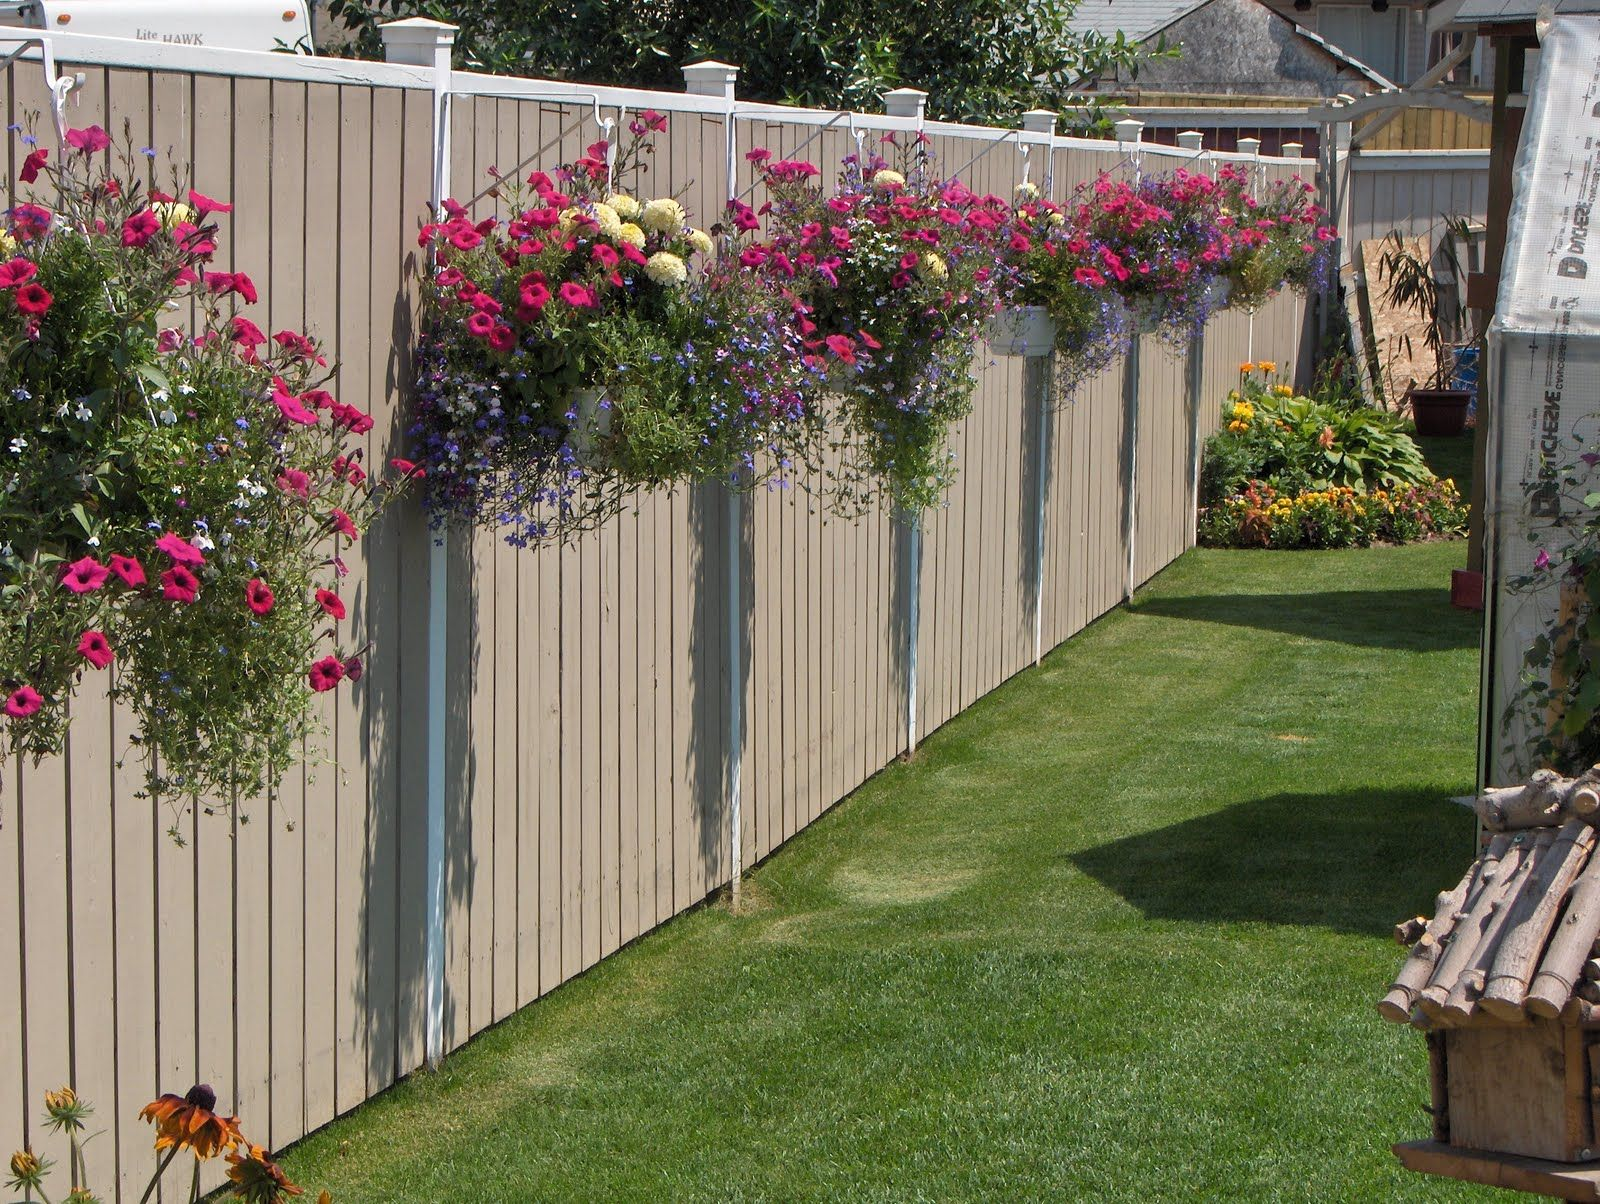 Ideas for garden fences that are   practical and also look good